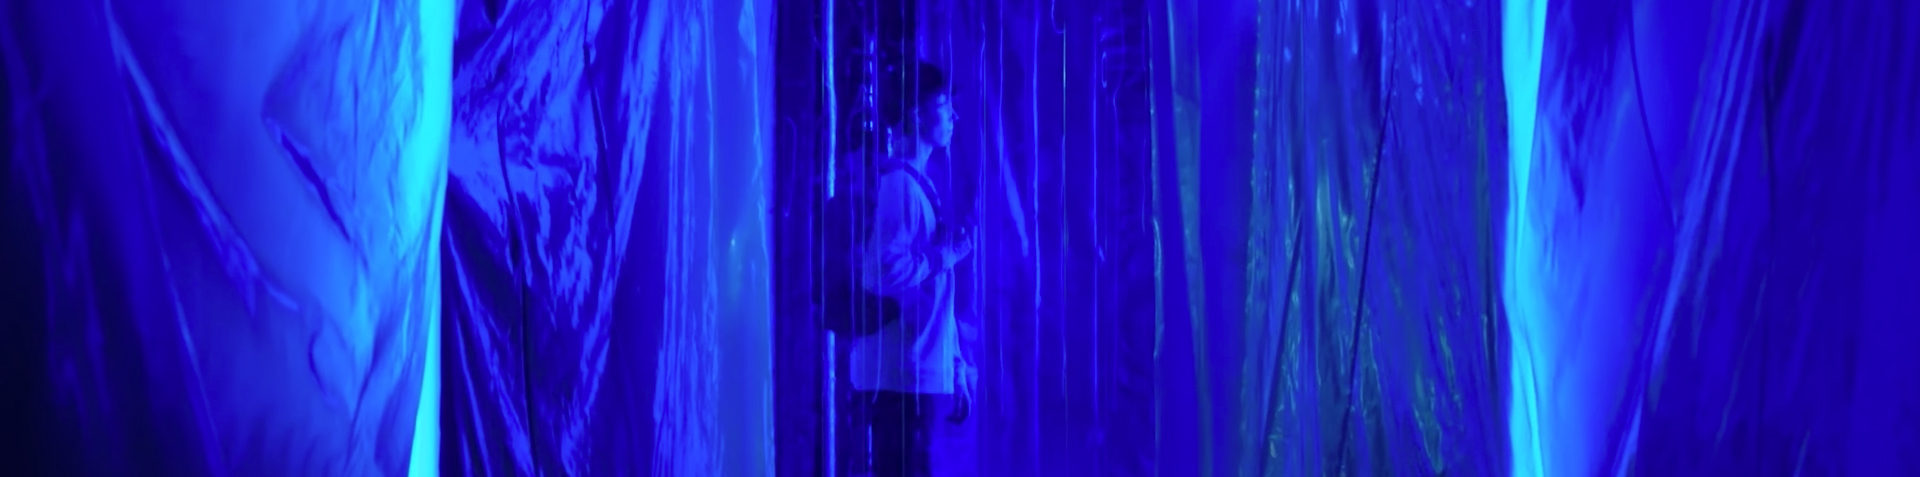 Sequin in a Blue Room. Image Credit: AFTRS.